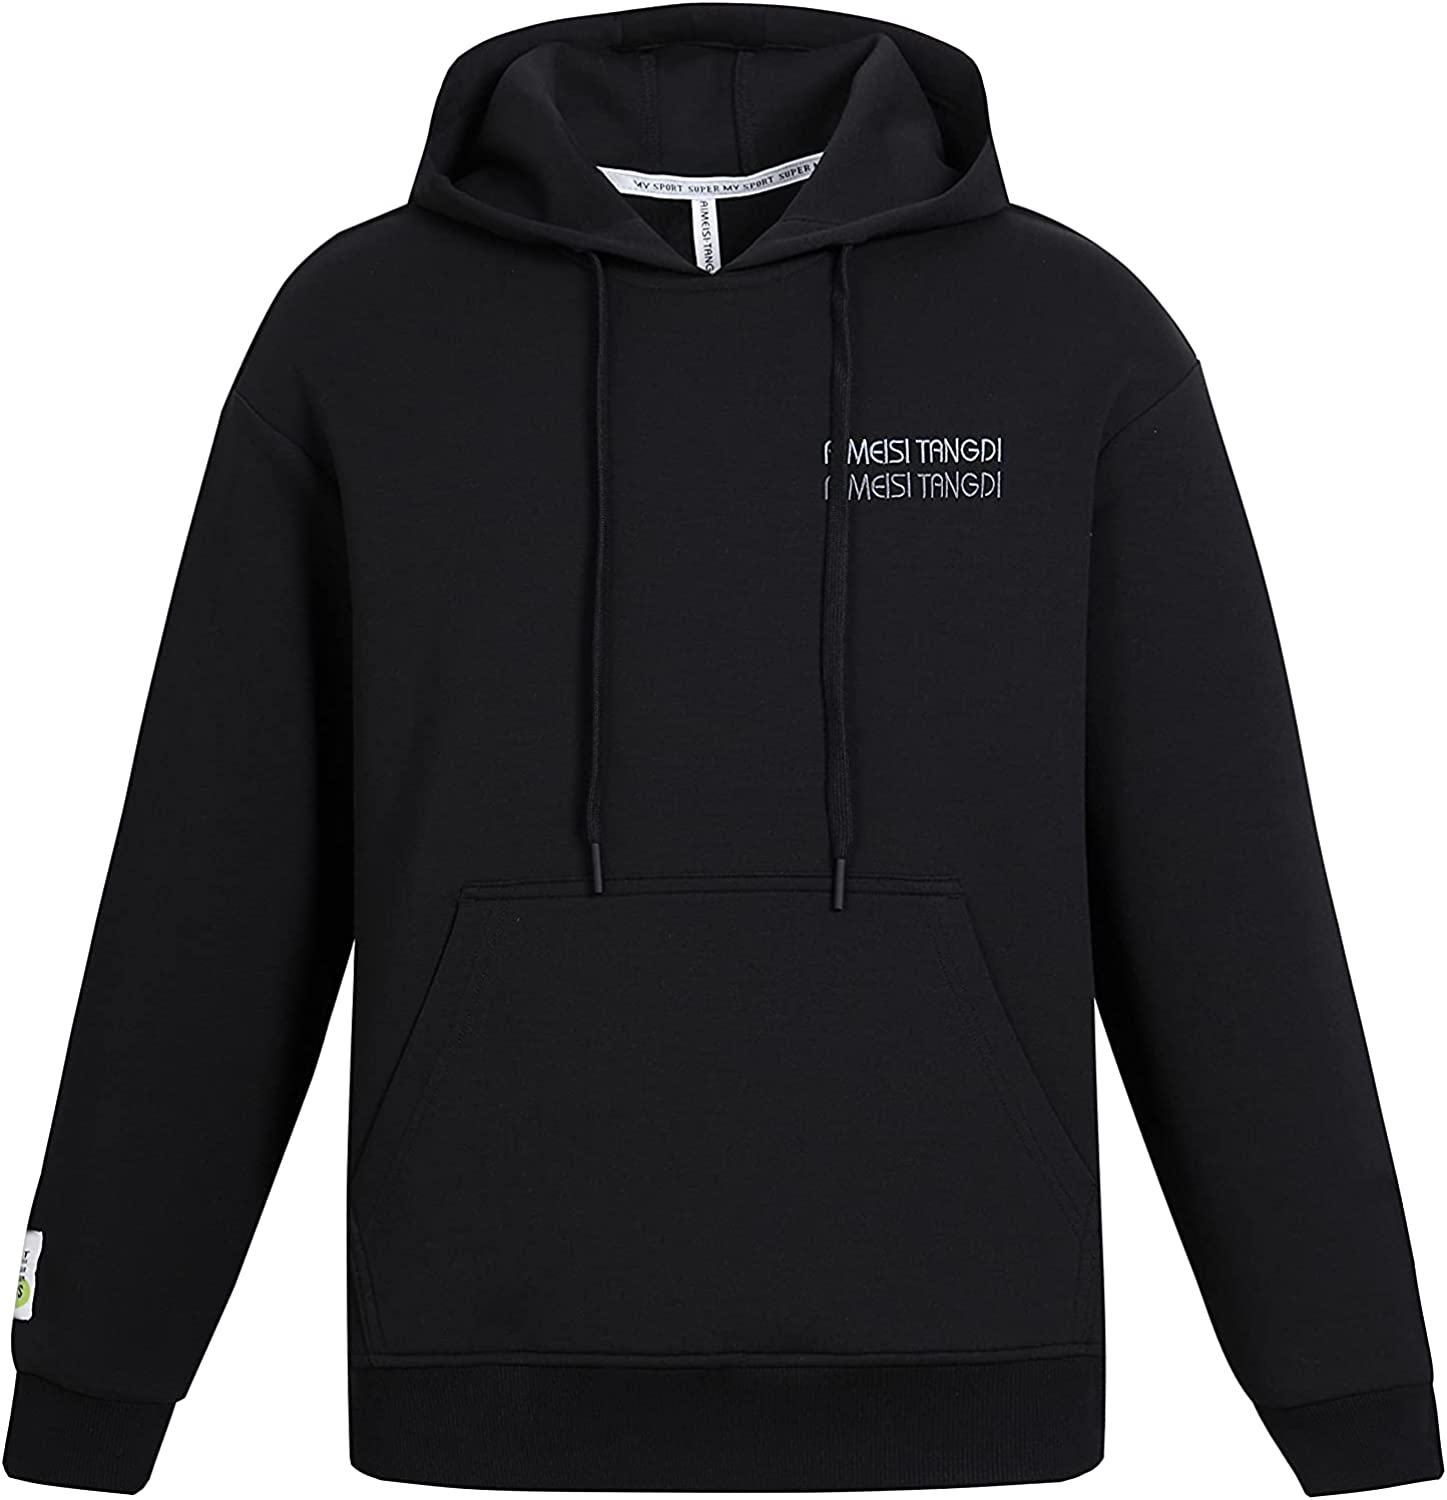 Manufacturer OFFicial shop Men's New popularity FALL Graphic Embroidered Hoodies Sweatshirt Fashion Pullov